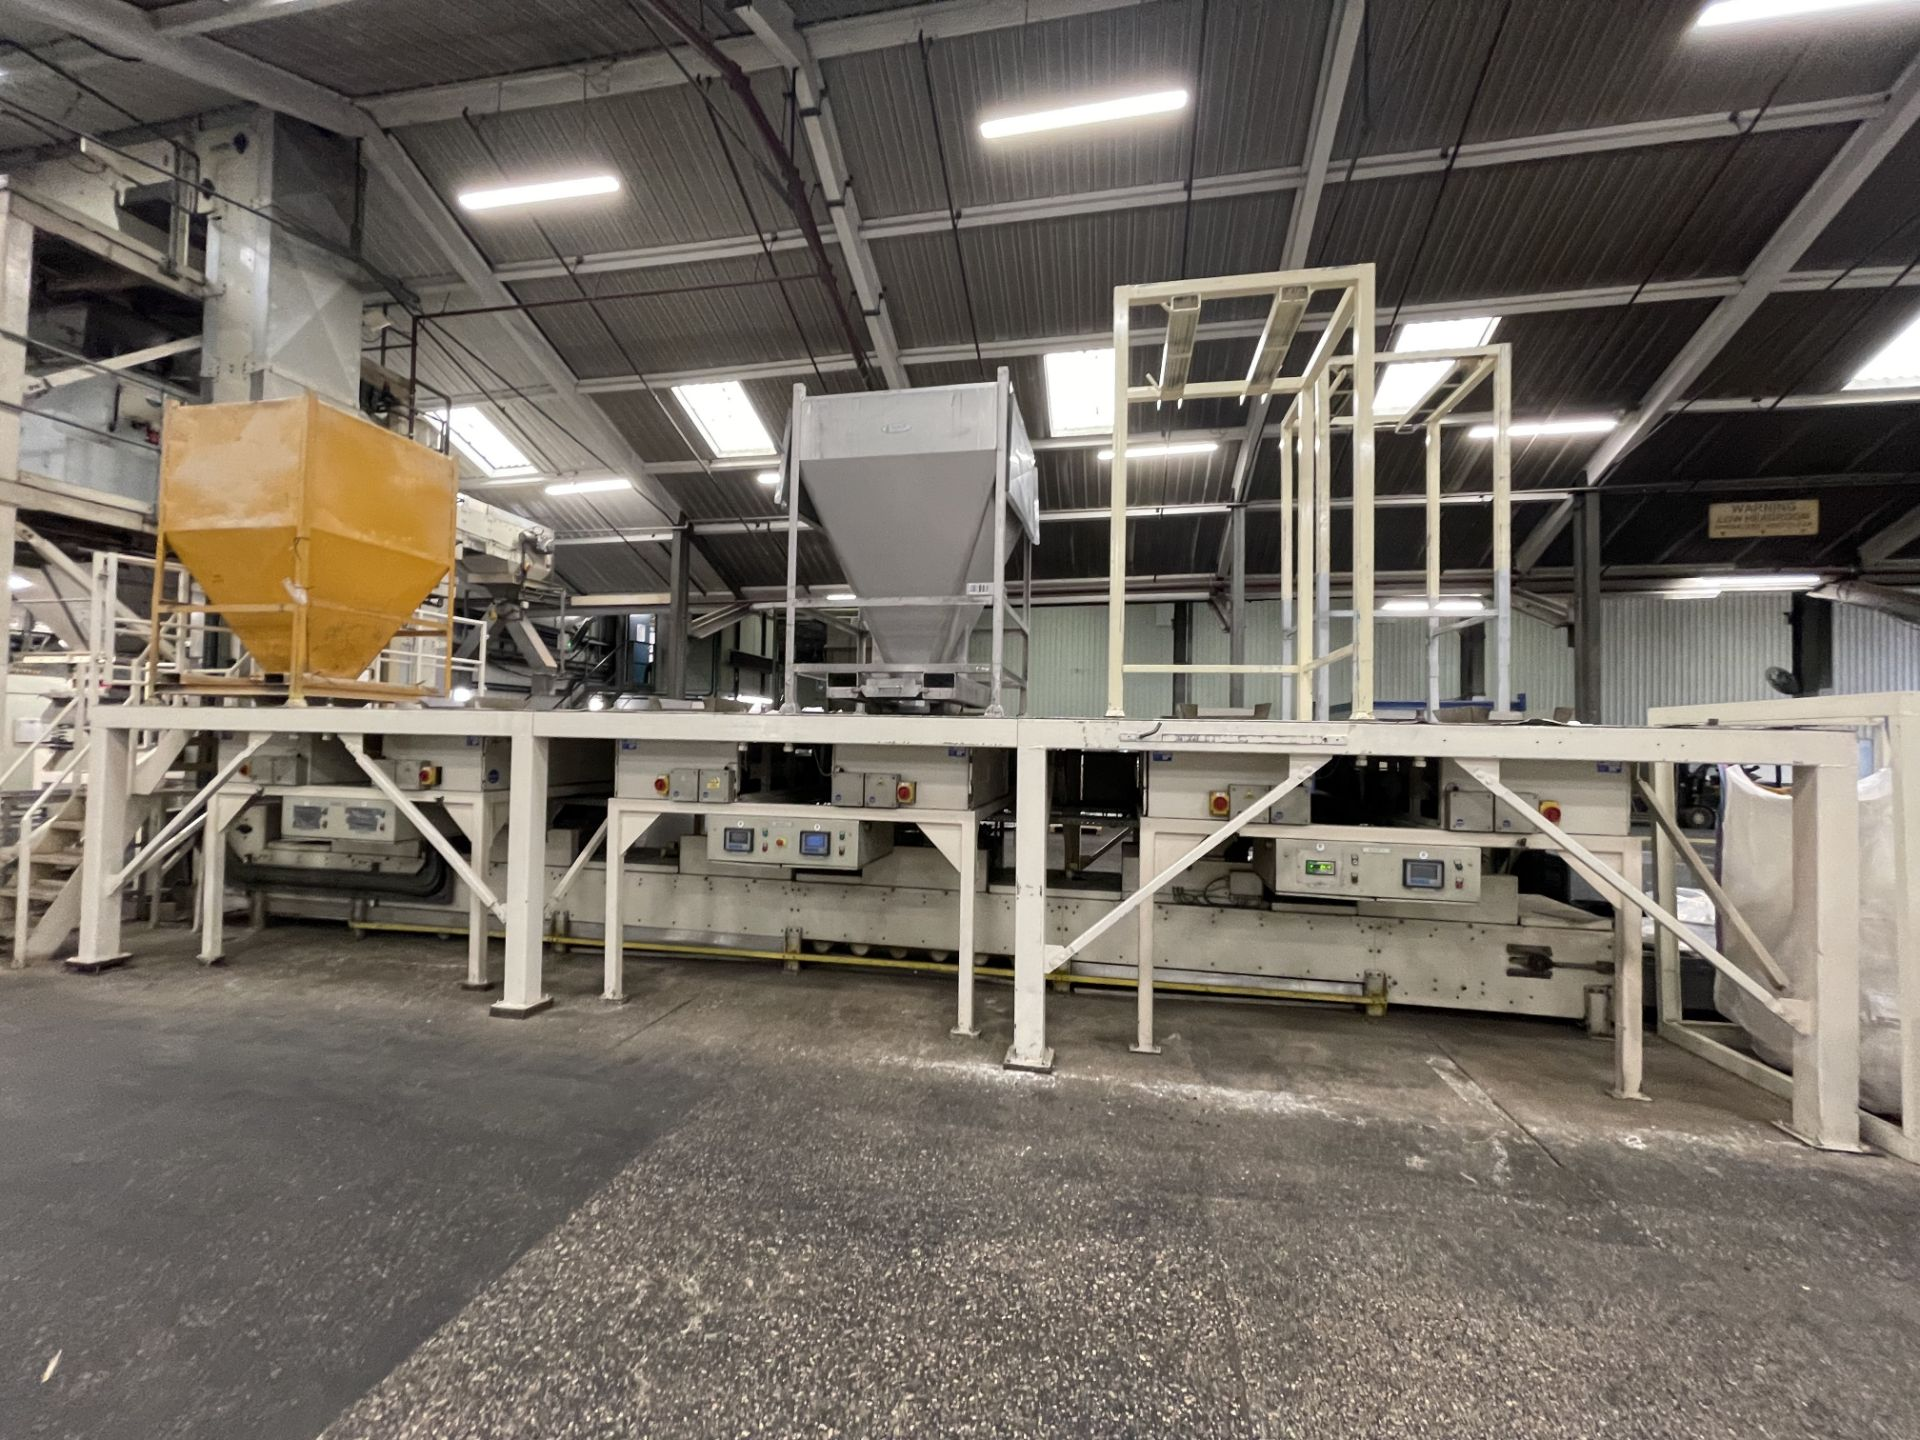 Pet Food Blending Line c/w Wynveen PM 750LH Stainless Steel Double Shaft Paddle Mixer - Image 23 of 63